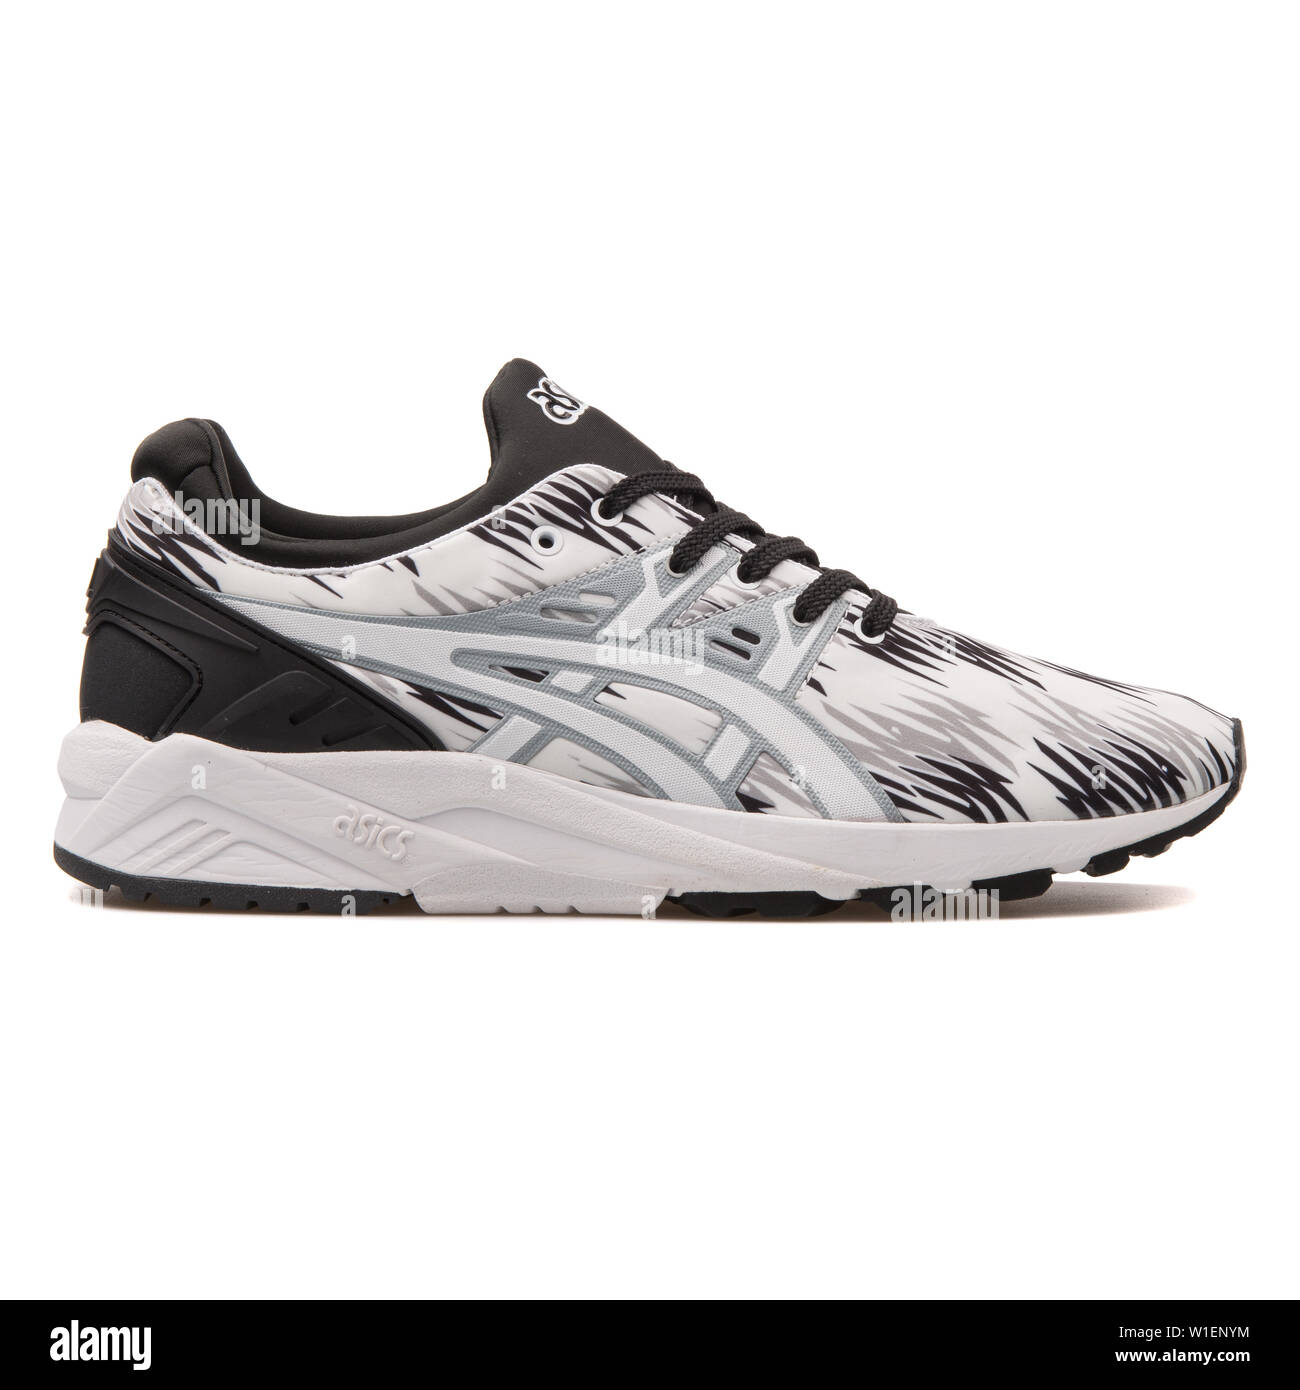 de madera ~ lado Seguid así  VIENNA, AUSTRIA - AUGUST 10, 2017: Asics Gel Kayano Trainer Evo black and  white sneaker on white background Stock Photo - Alamy